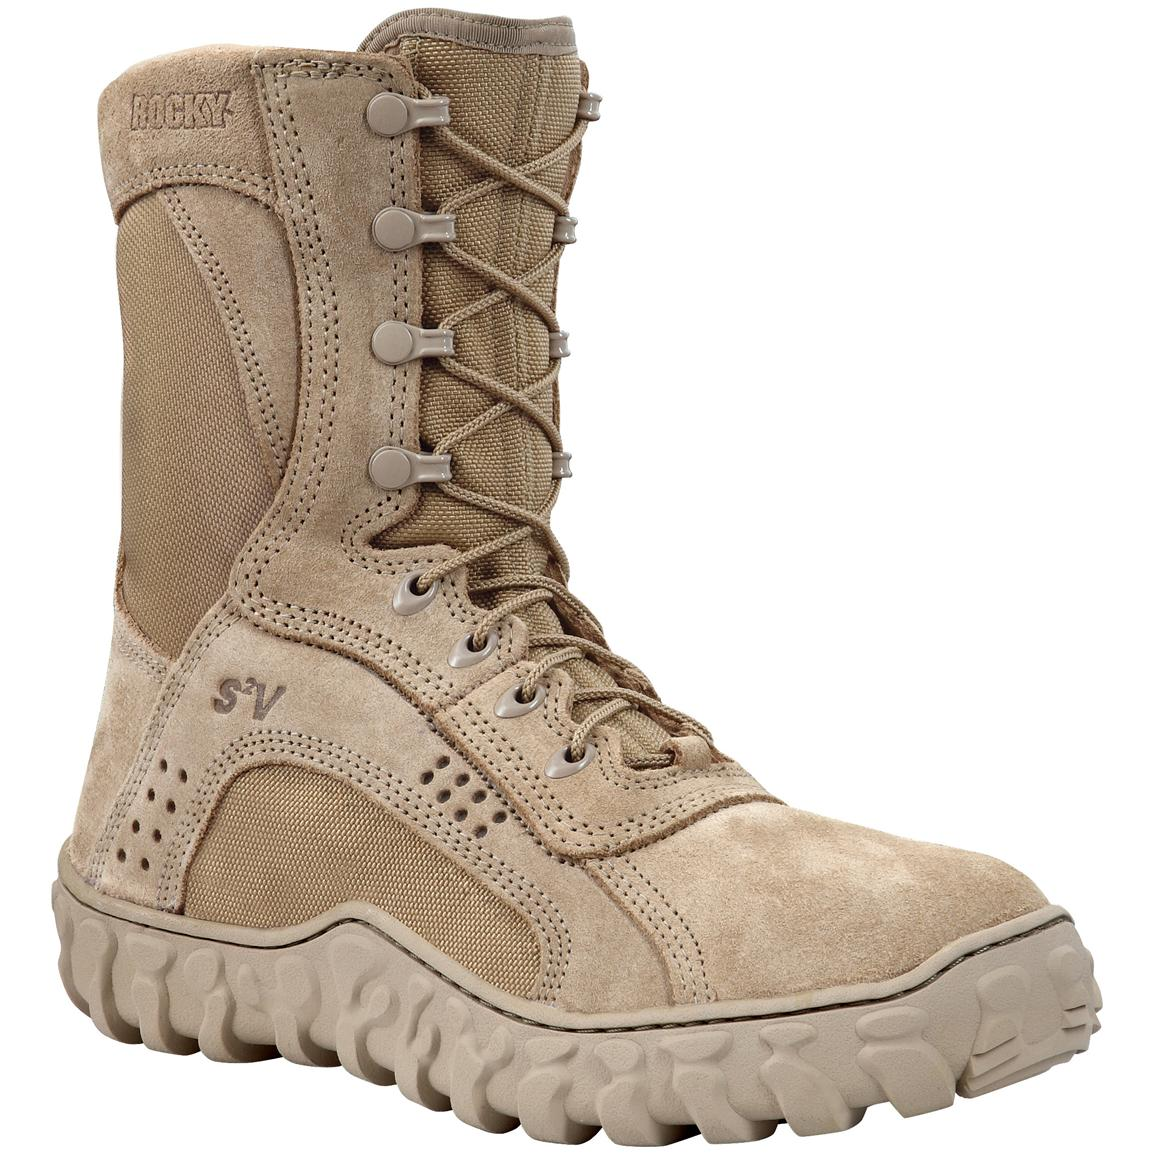 Men's Rocky® S2V Steel Toe Military Boots, Desert Tan